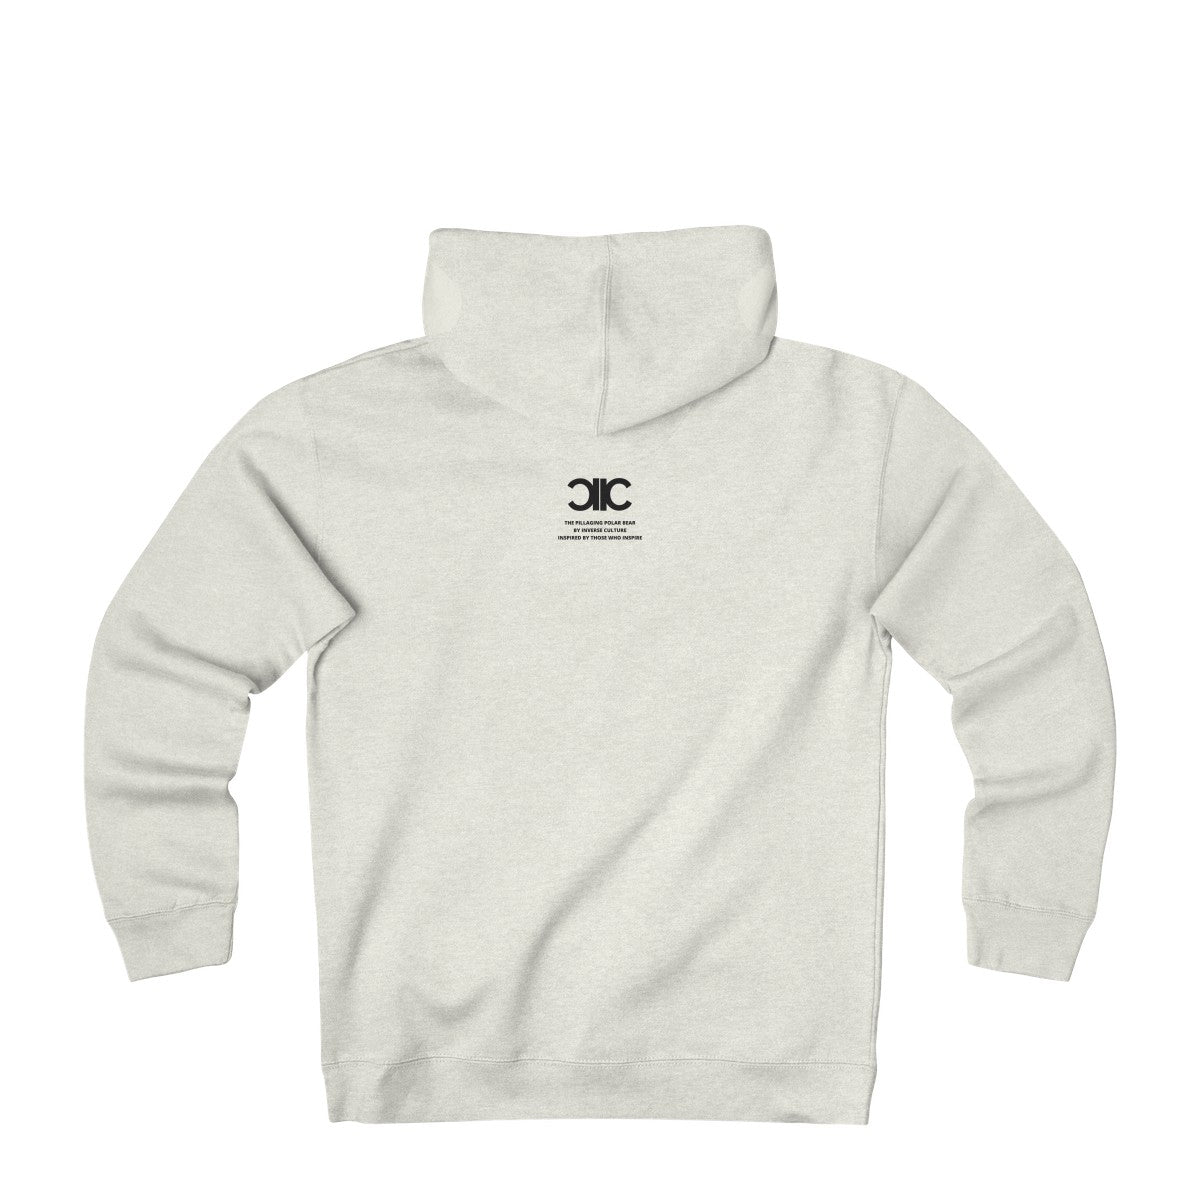 The Pillaging Polar Bear Heavyweight Fleece Hoodie in White